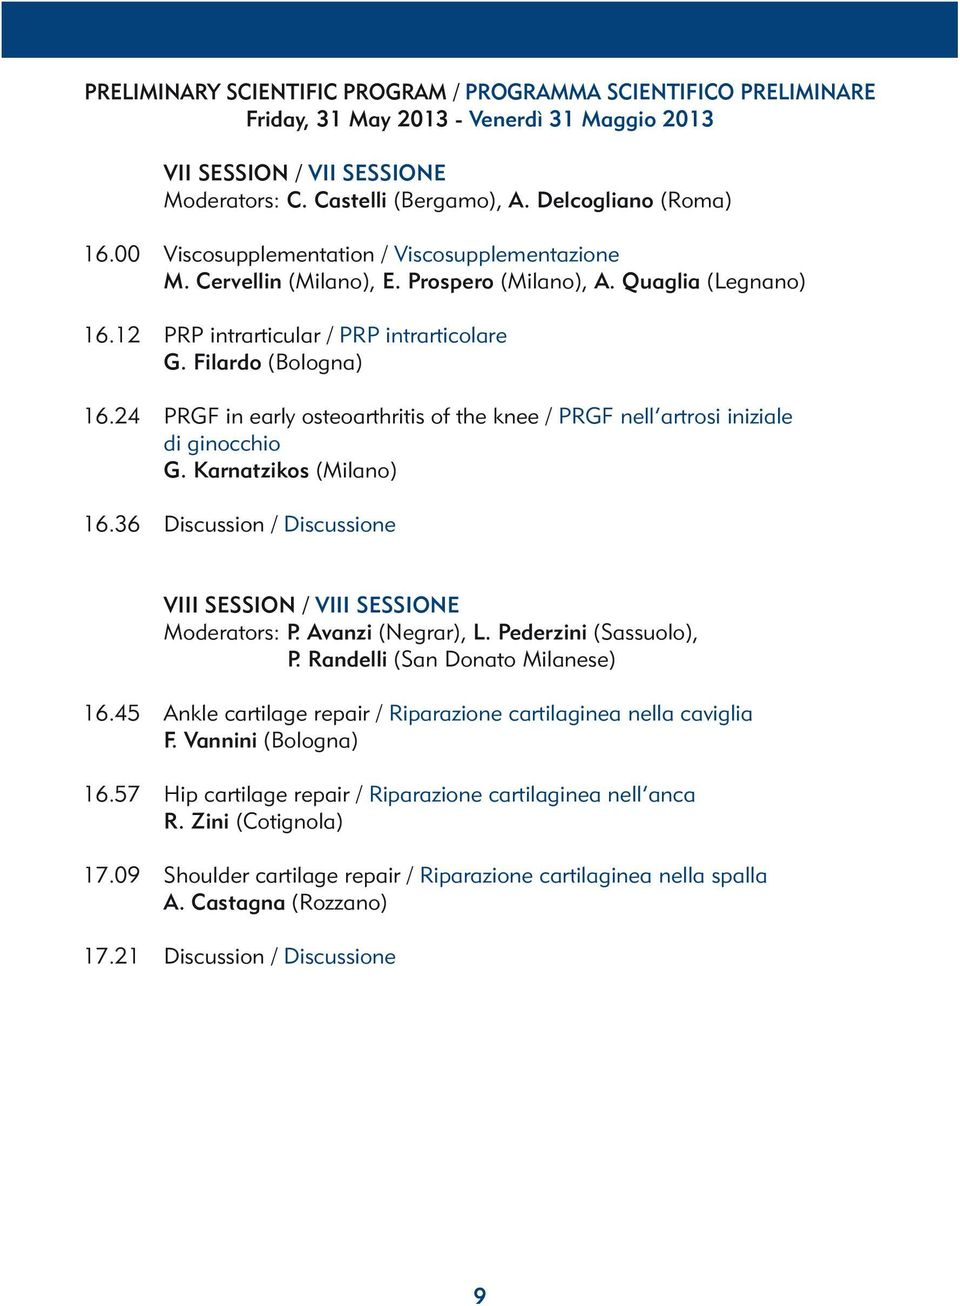 24 PRGF in early osteoarthritis of the knee / PRGF nell artrosi iniziale di ginocchio G. Karnatzikos (Milano) 16.36 Discussion / Discussione VIII SESSION / VIII SESSIONE Moderators: P.